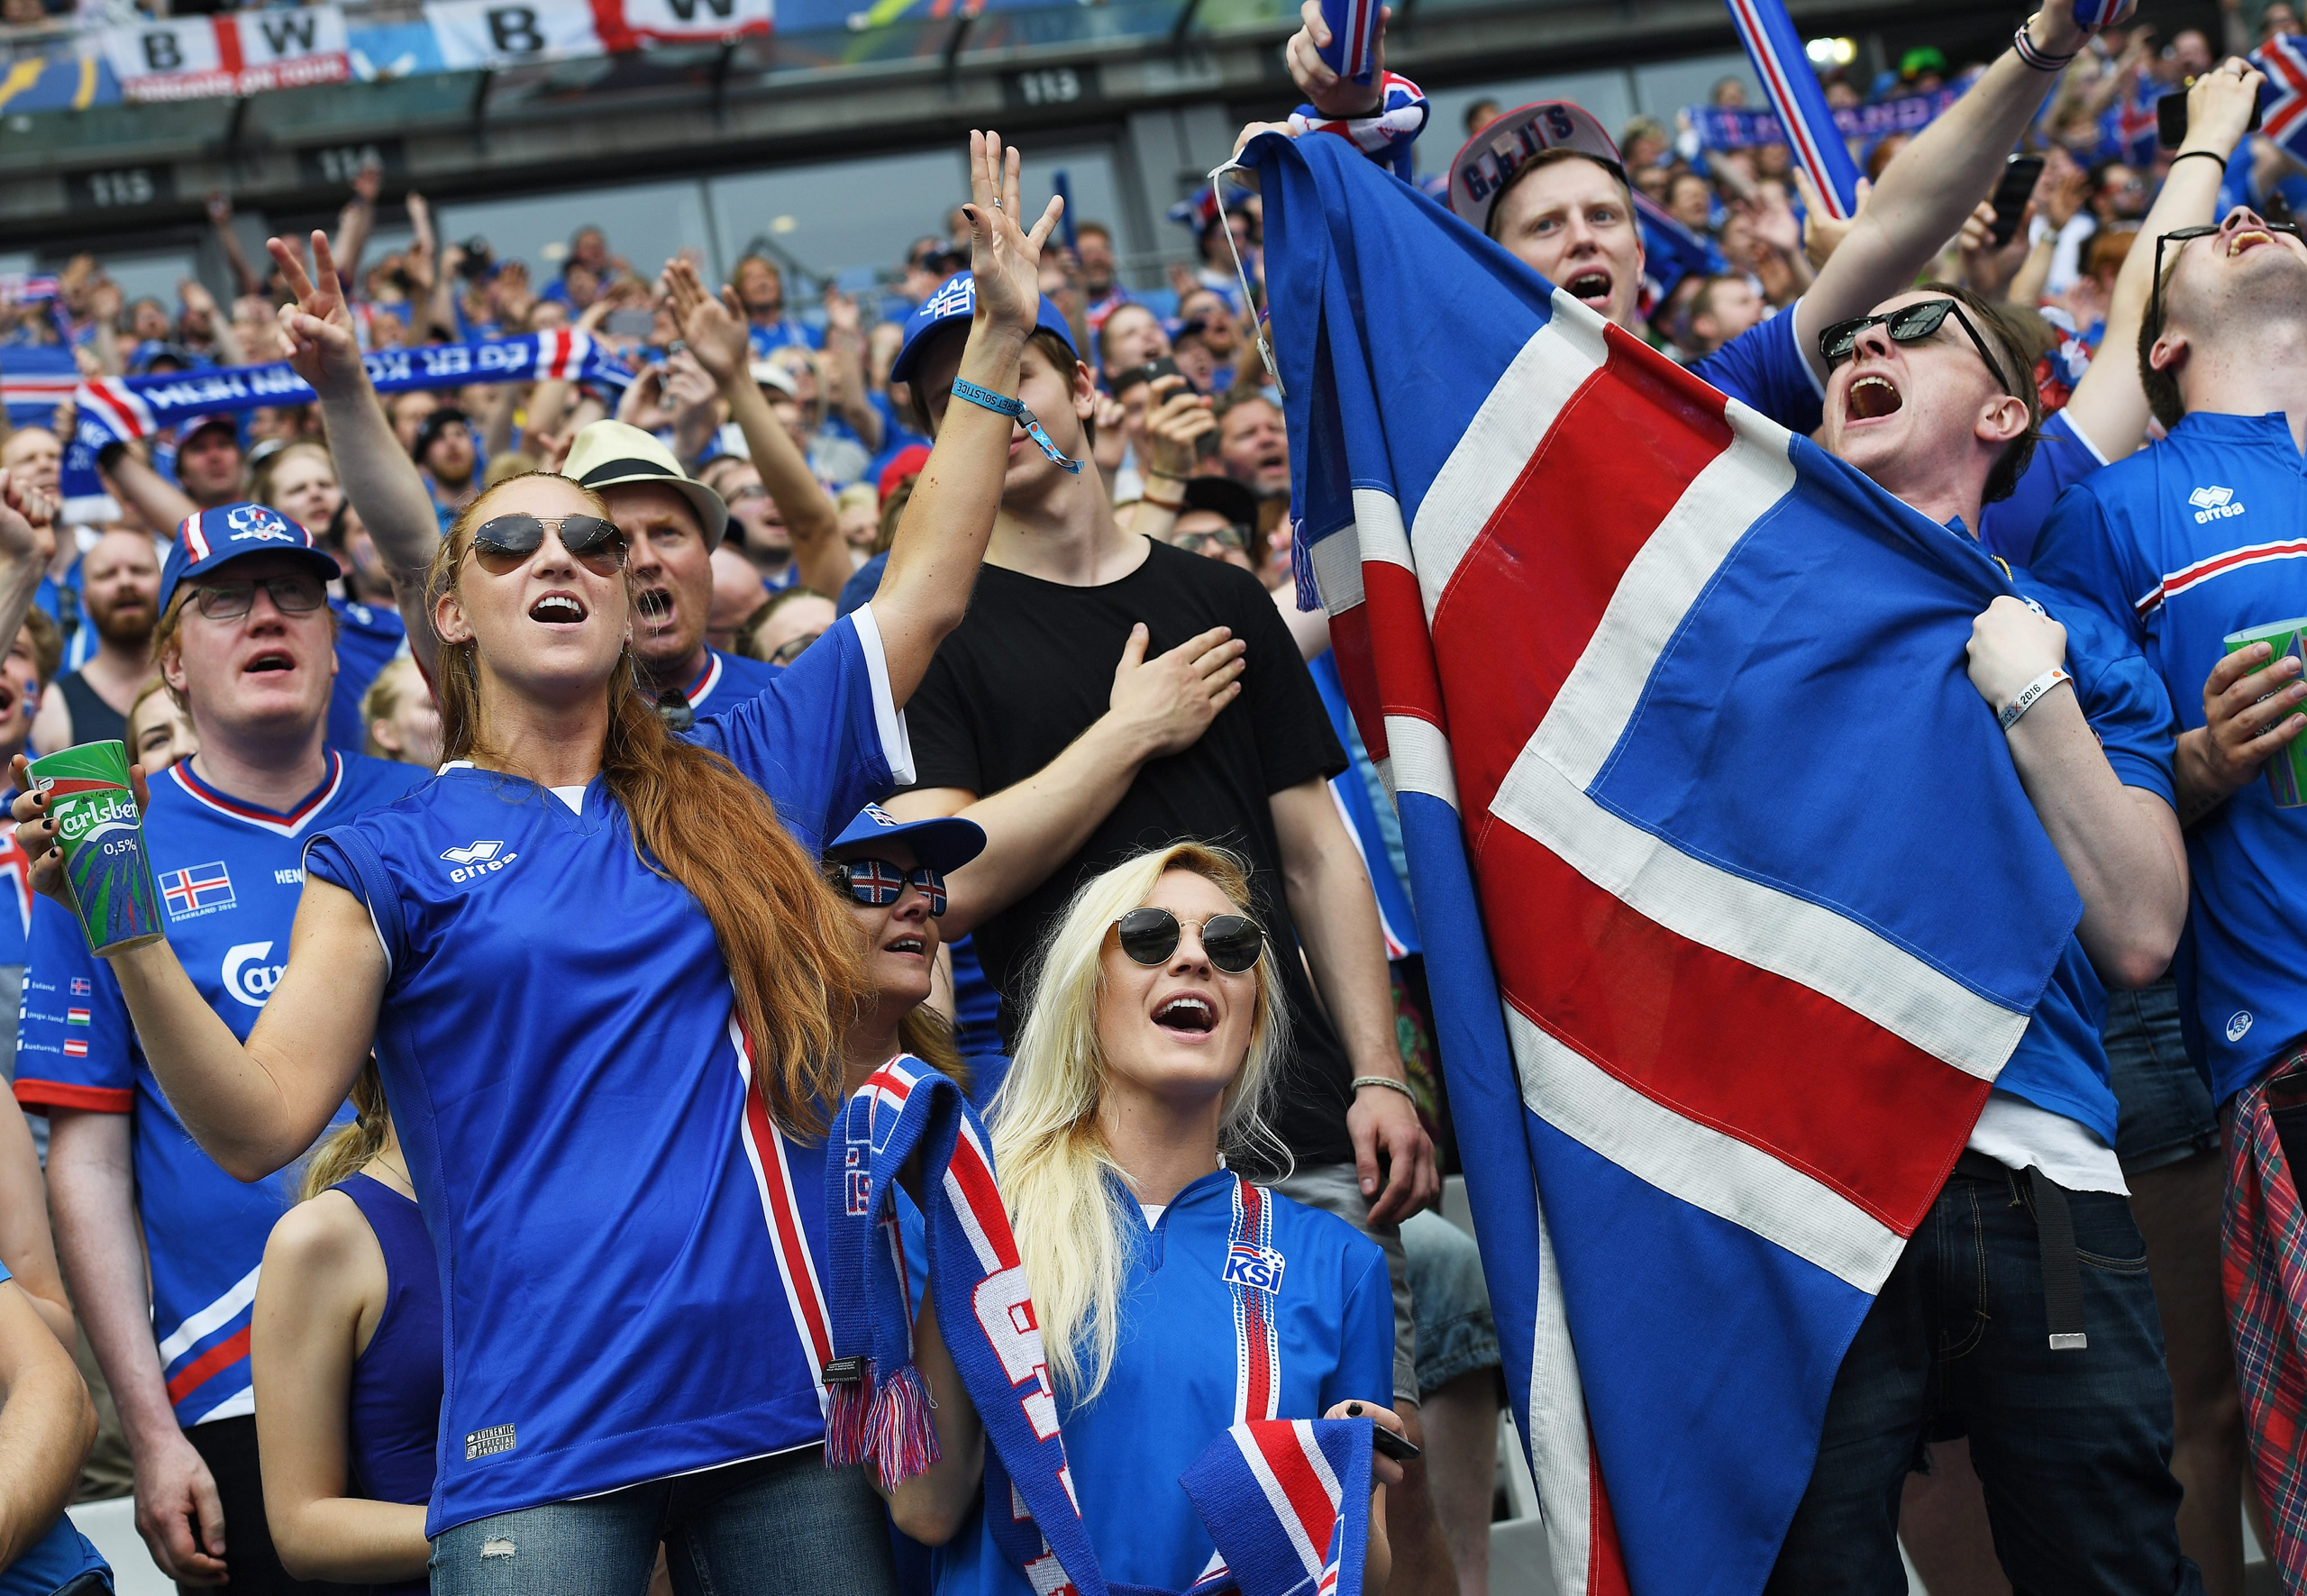 Iceland fans before the UEFA EURO 2016 group F preliminary round match between Iceland and Austria at Stade de France in Saint-Denis, France, on June 22, 2016.